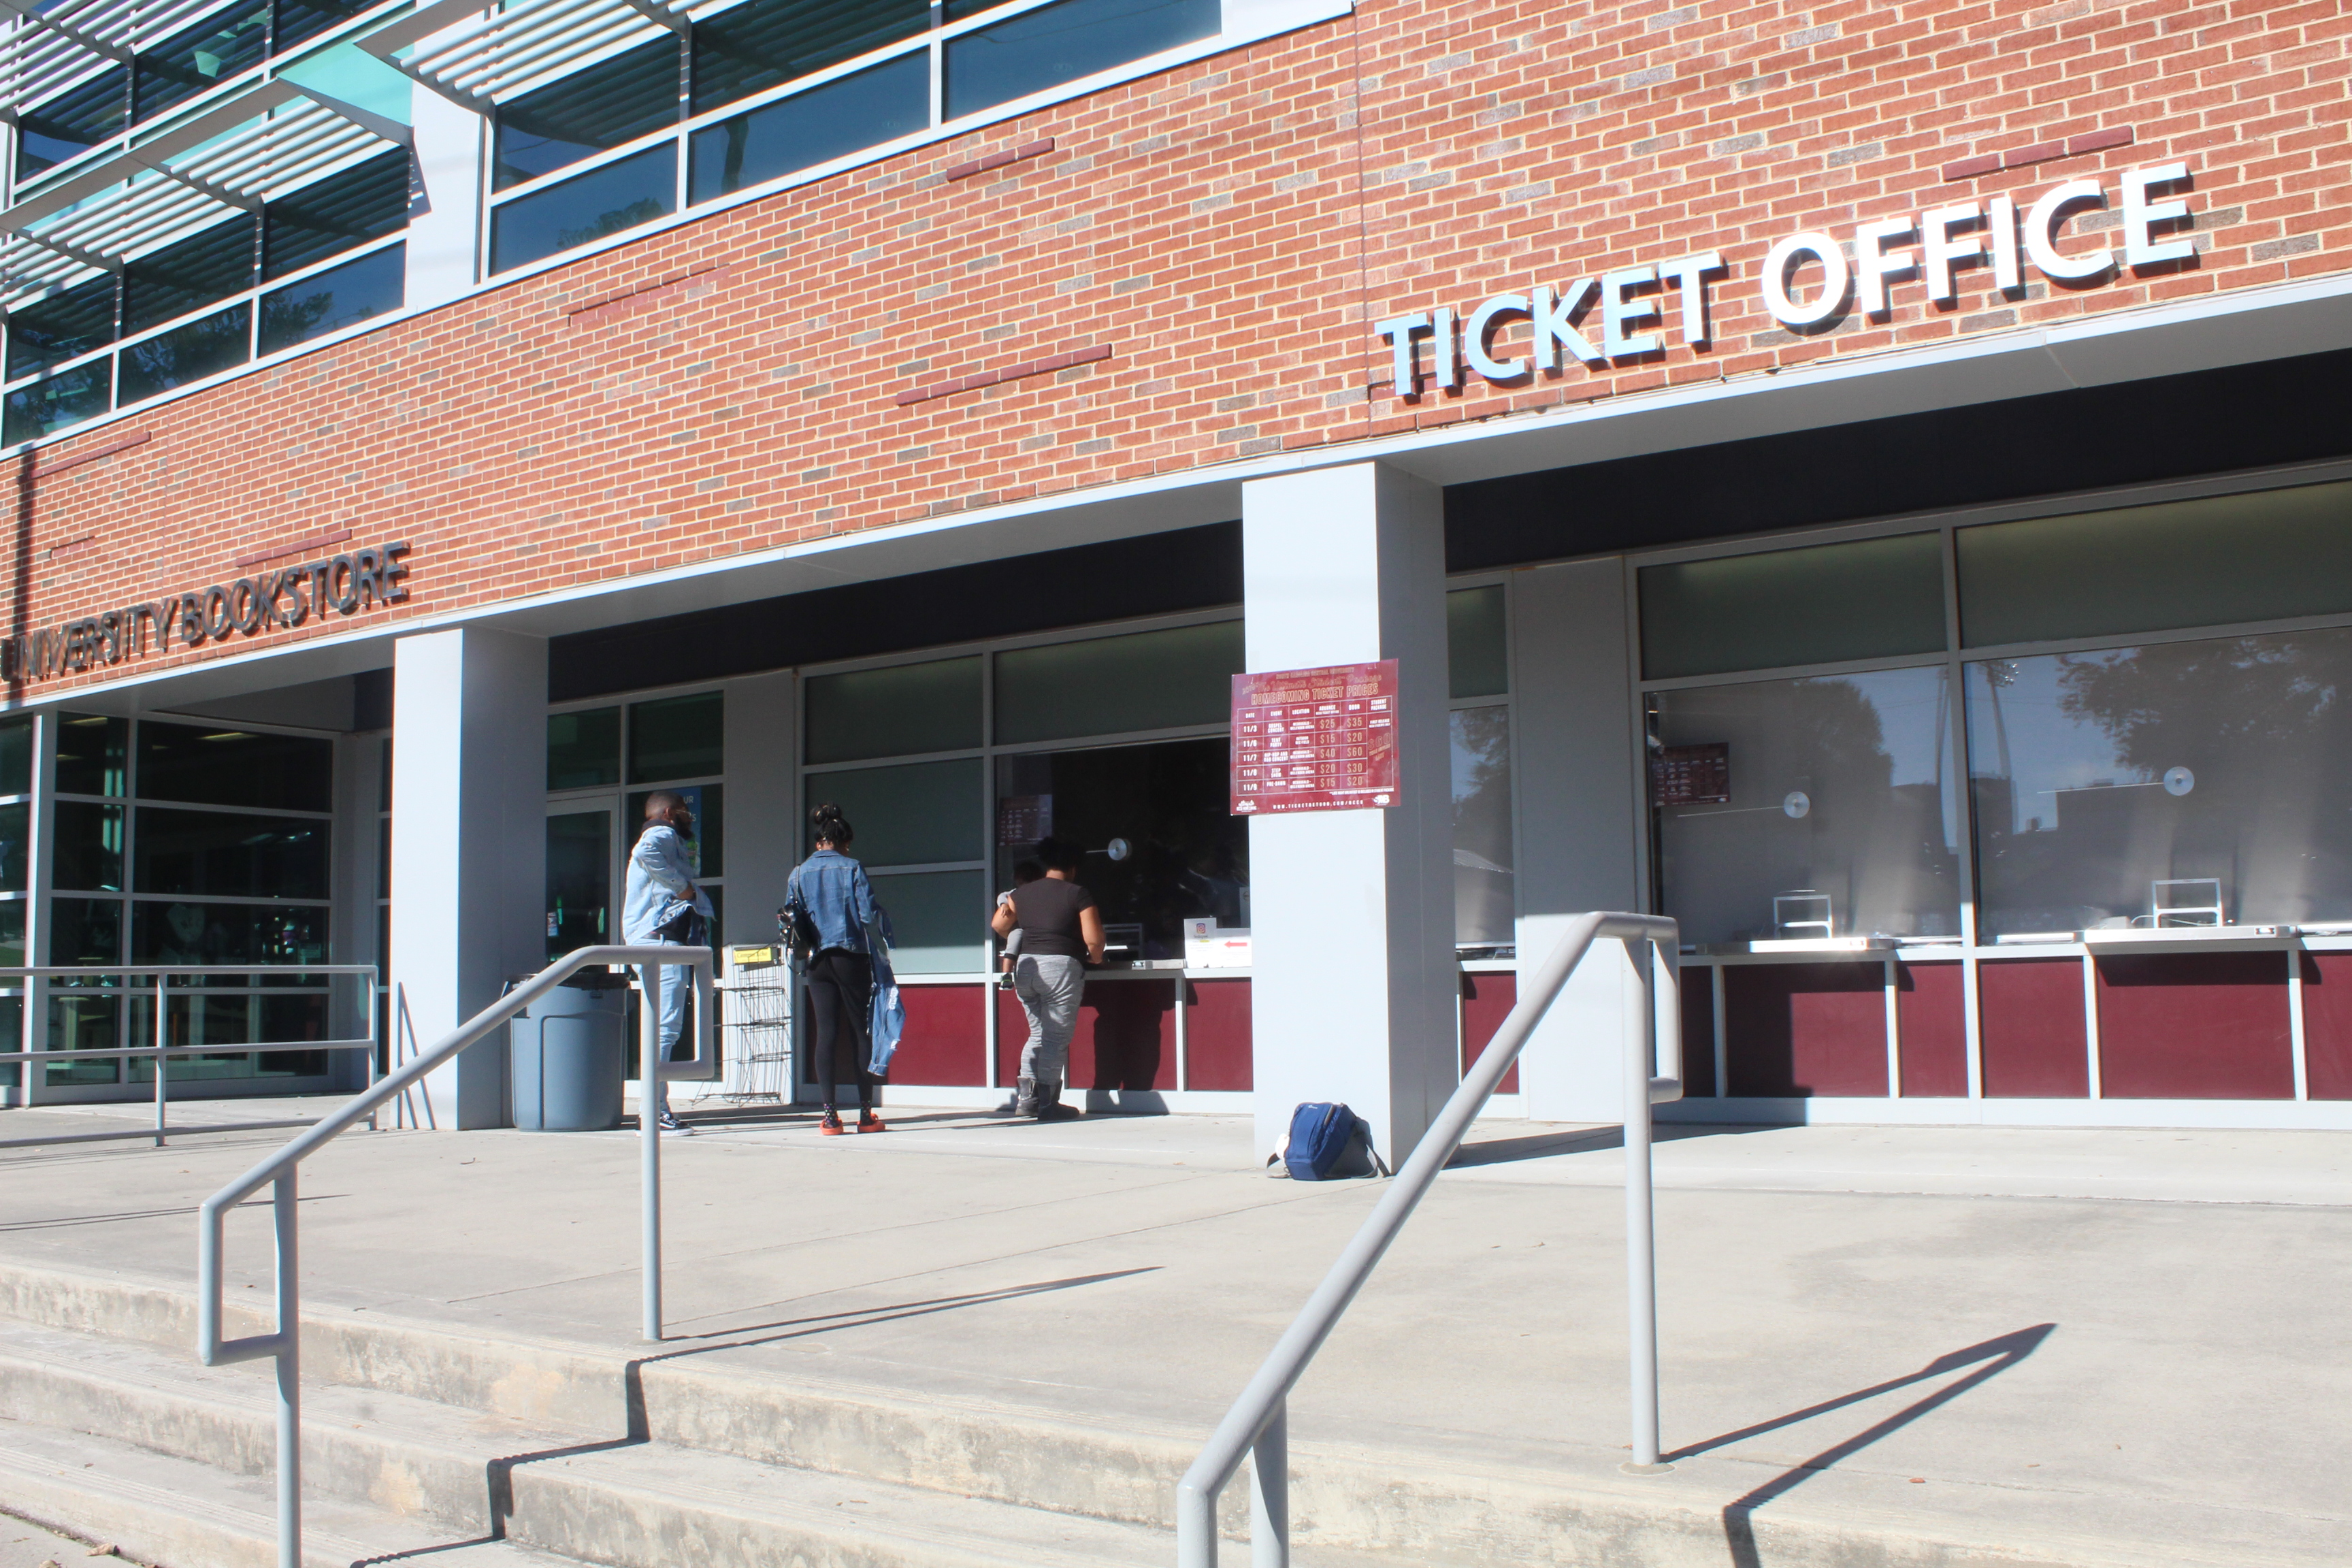 ticket-office-pic.jpg?time=1601184570